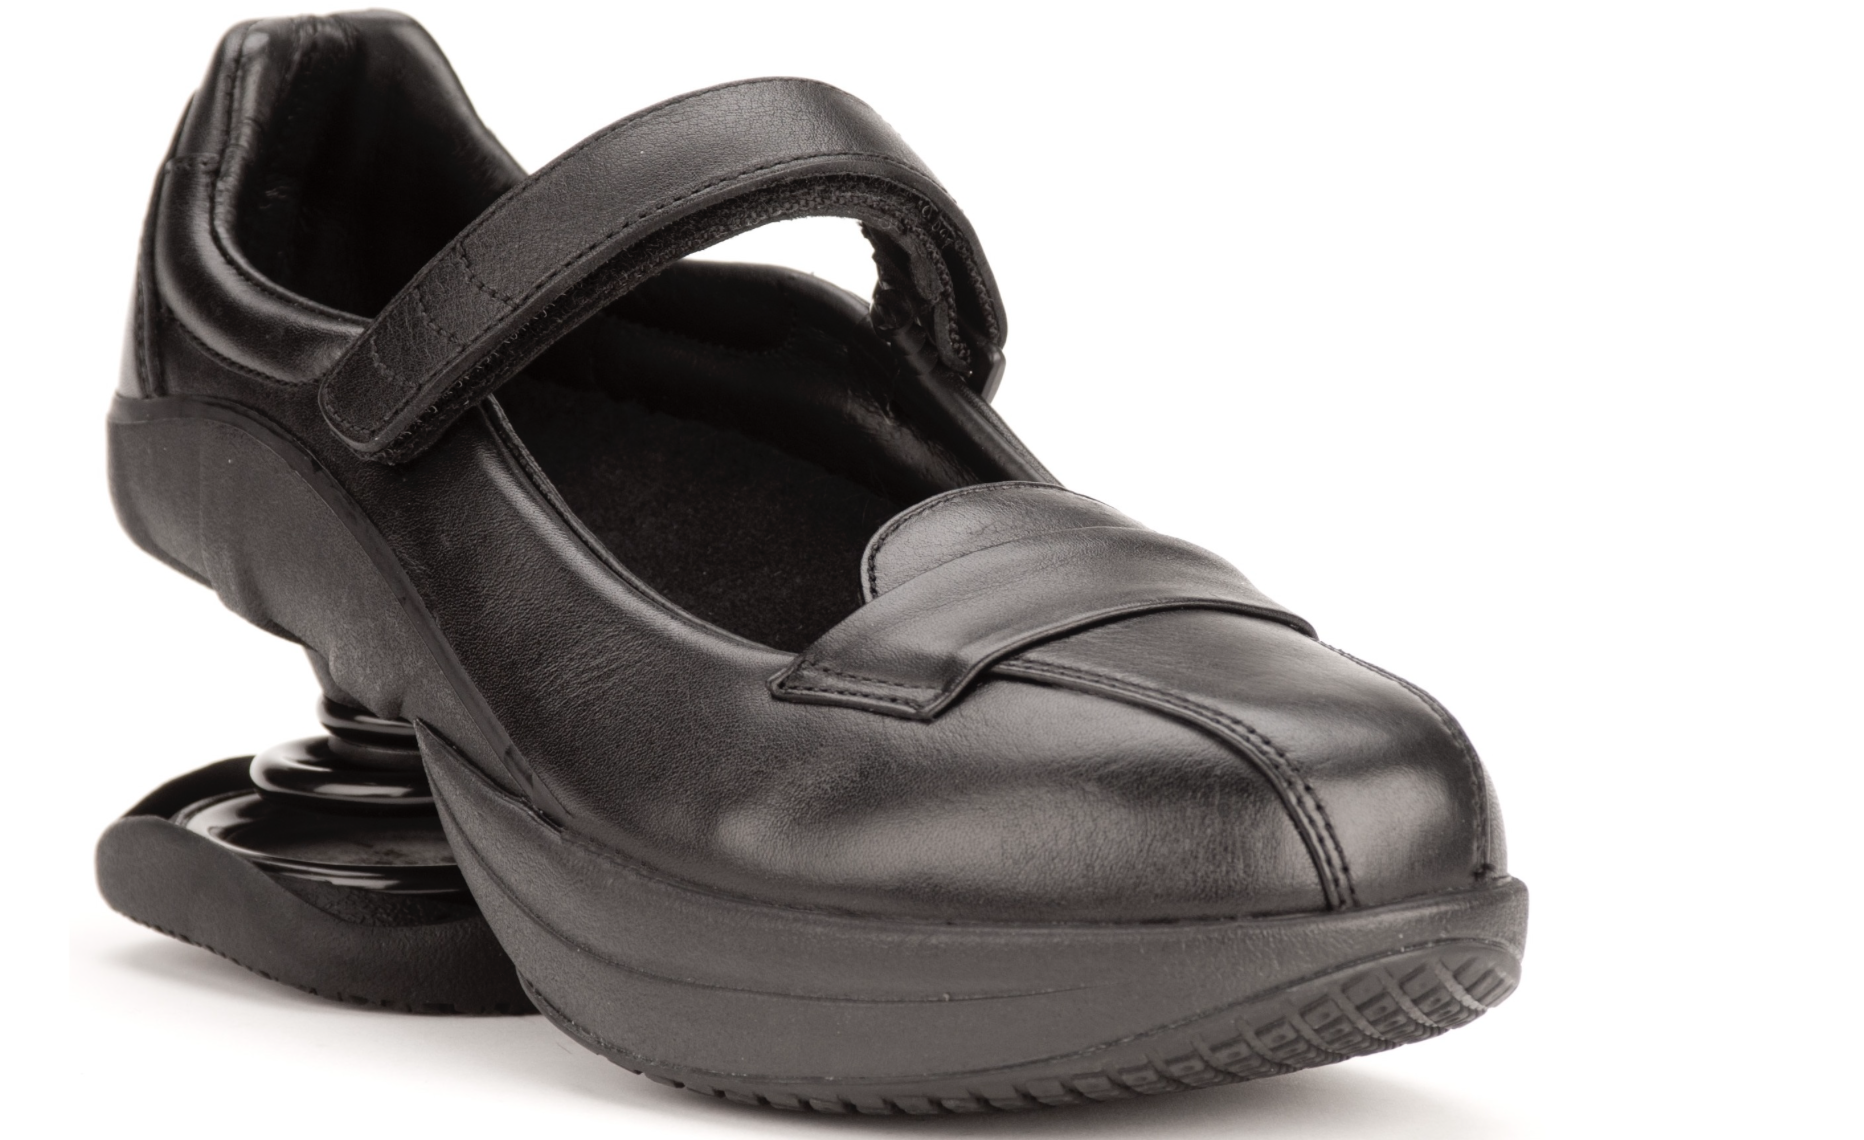 River Valley Comfort Shoes, LLC image 5